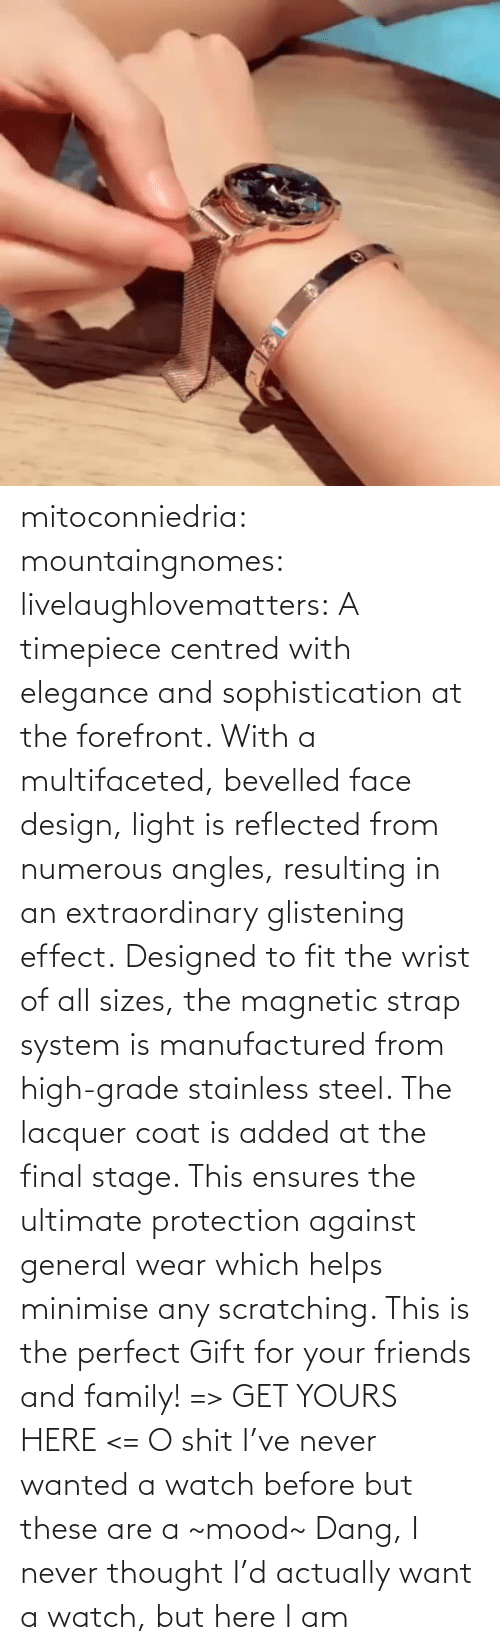 M 1: mitoconniedria: mountaingnomes:   livelaughlovematters:  A timepiece centred with elegance and sophistication at the forefront. With a multifaceted, bevelled face design, light is reflected from numerous angles, resulting in an extraordinary glistening effect. Designed to fit the wrist of all sizes, the magnetic strap system is manufactured from high-grade stainless steel. The lacquer coat is added at the final stage. This ensures the ultimate protection against general wear which helps minimise any scratching. This is the perfect Gift for your friends and family! => GET YOURS HERE <=  O shit I've never wanted a watch before but these are a ~mood~    Dang, I never thought I'd actually want a watch, but here I am